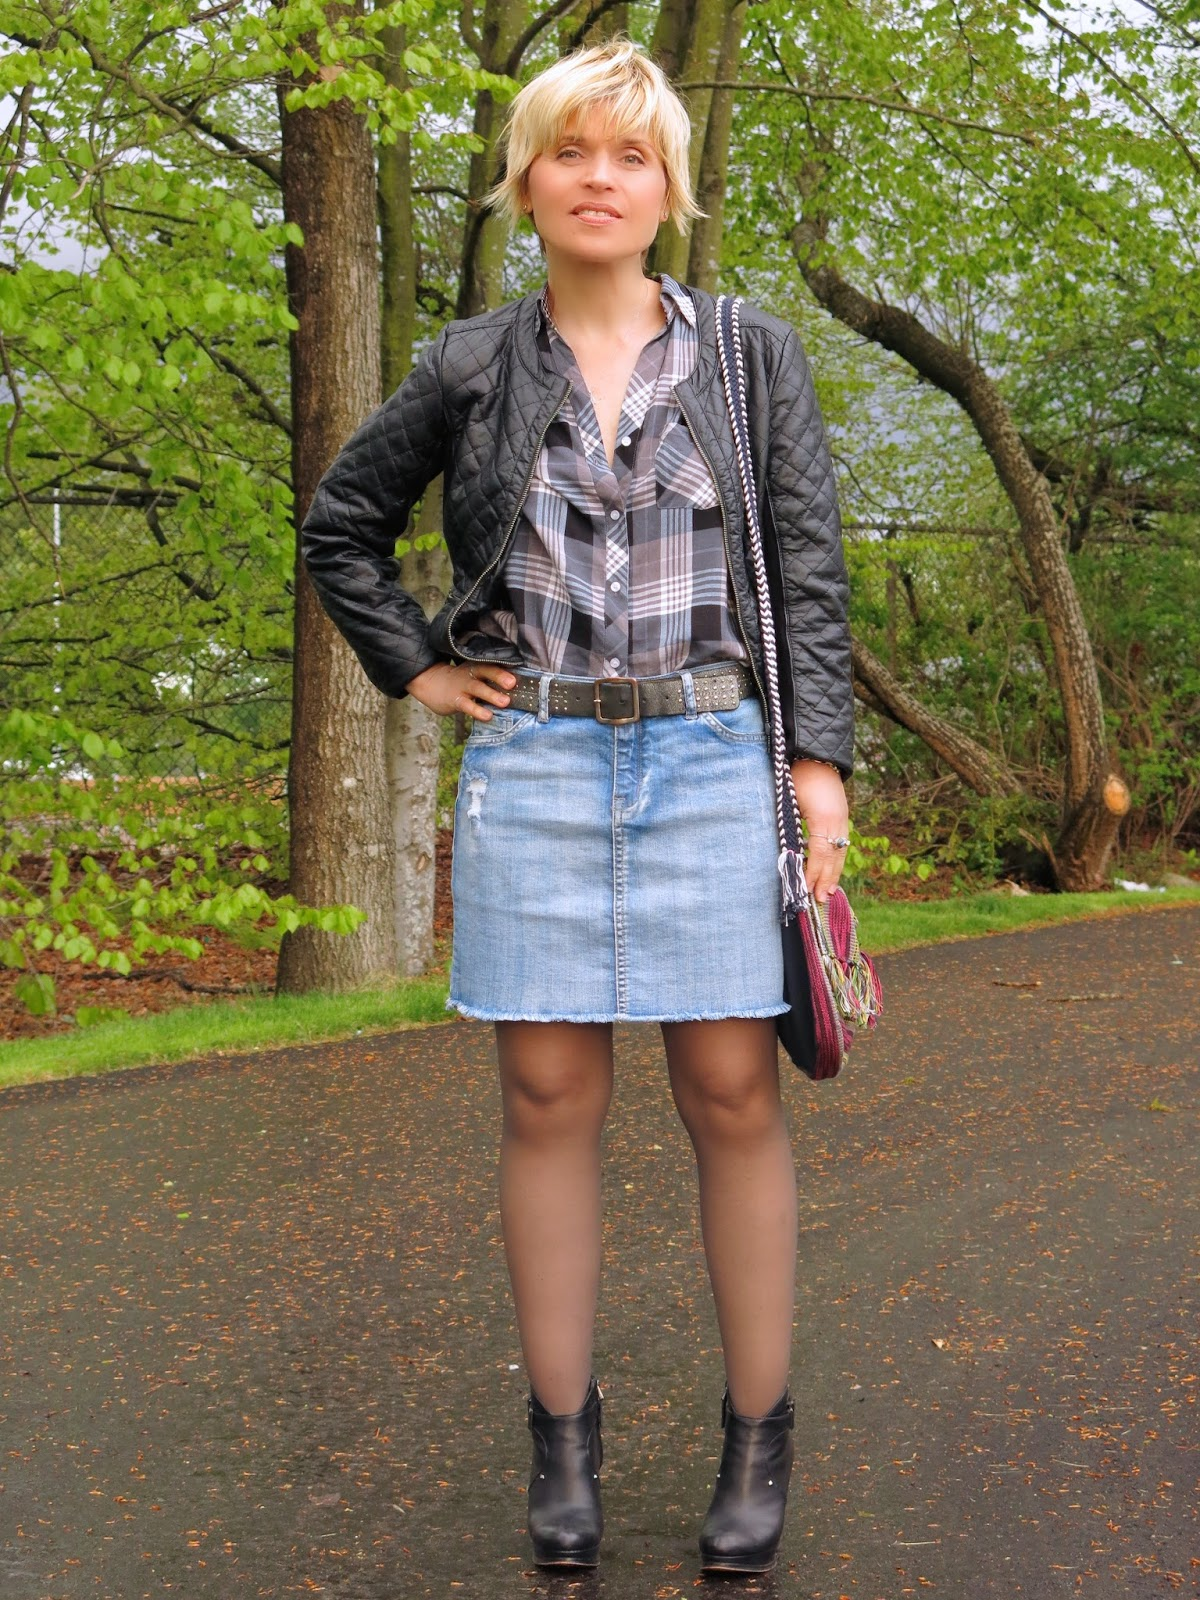 styling a distressed denim mini-skirt with a plaid shirt, quilted pleather jacket and wedge booties